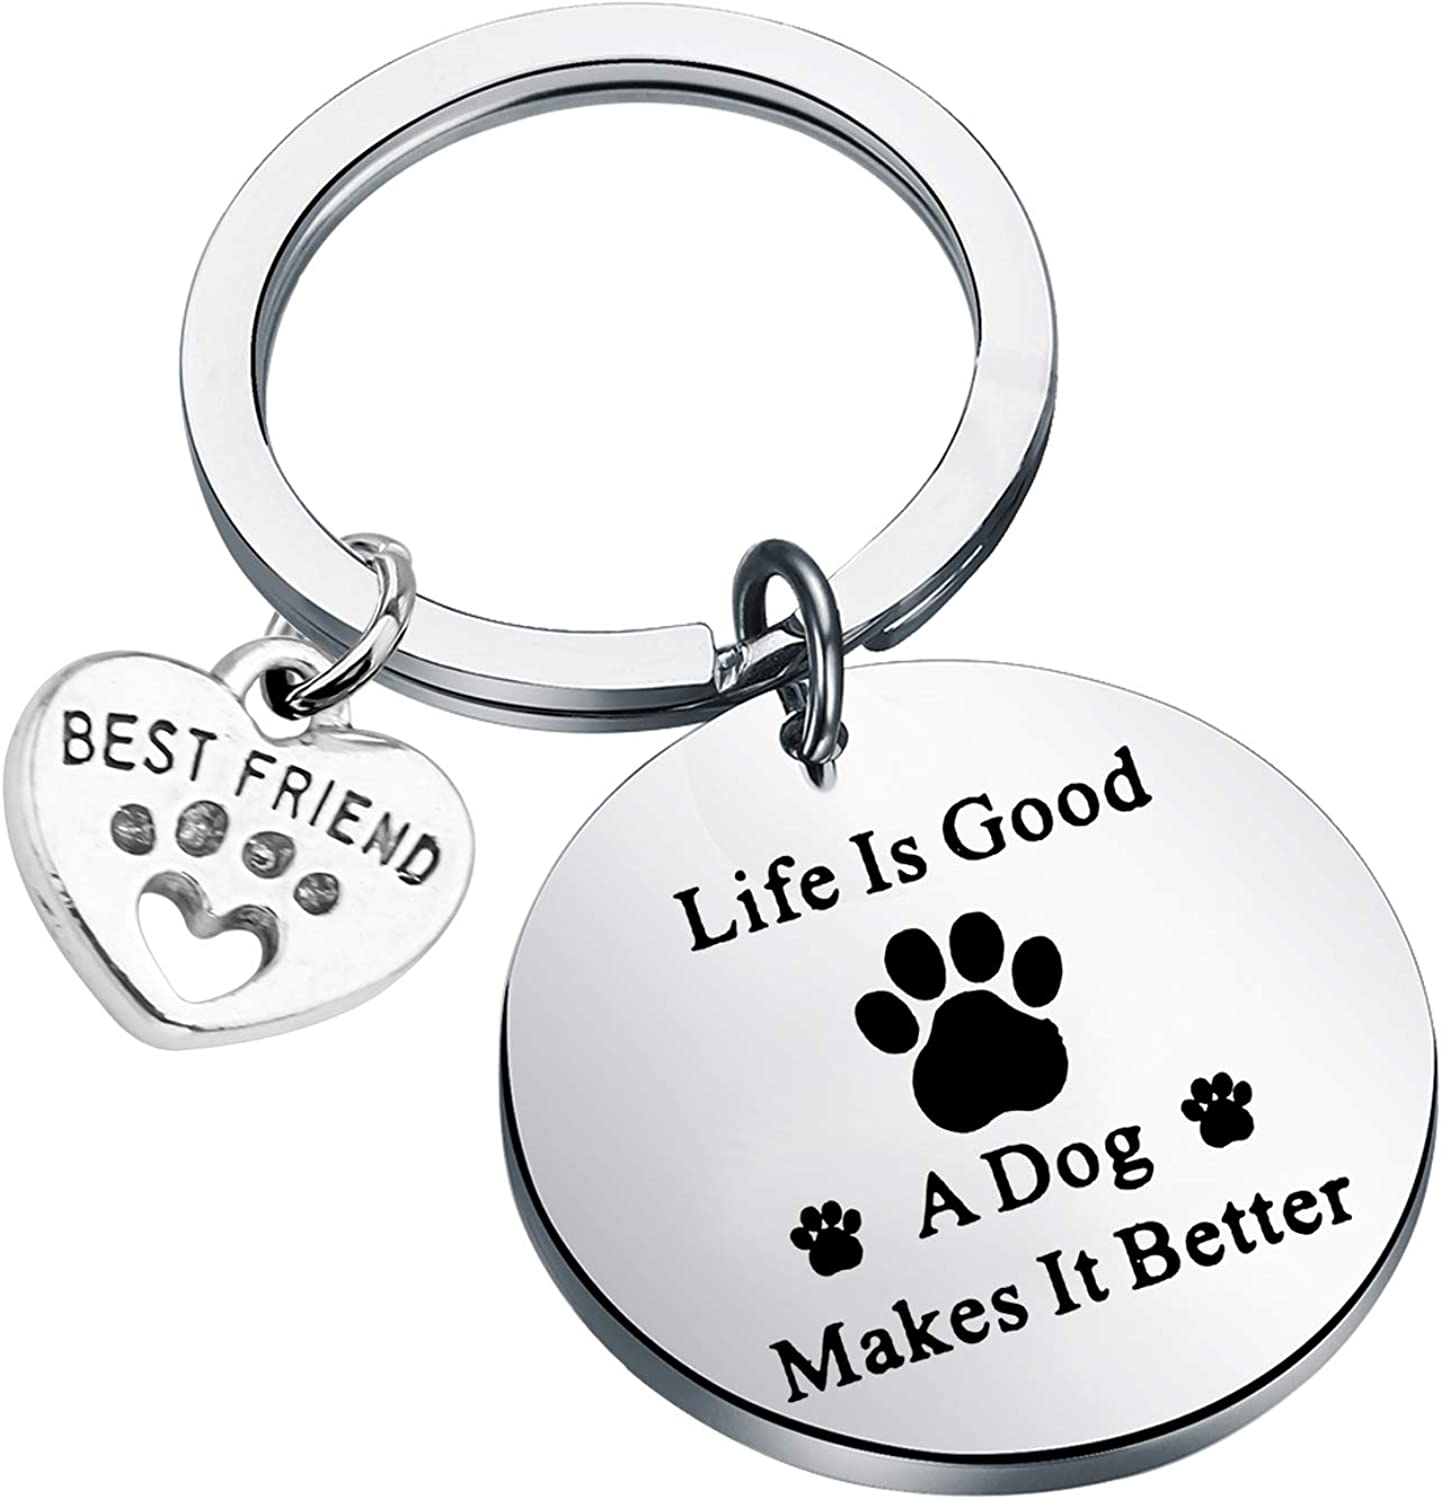 Gift for Pet lover Rescue Custom Pet Portrait Pet Picture Keychain New Dog Owner Dog lover gift Christmas Gift Personalized Present